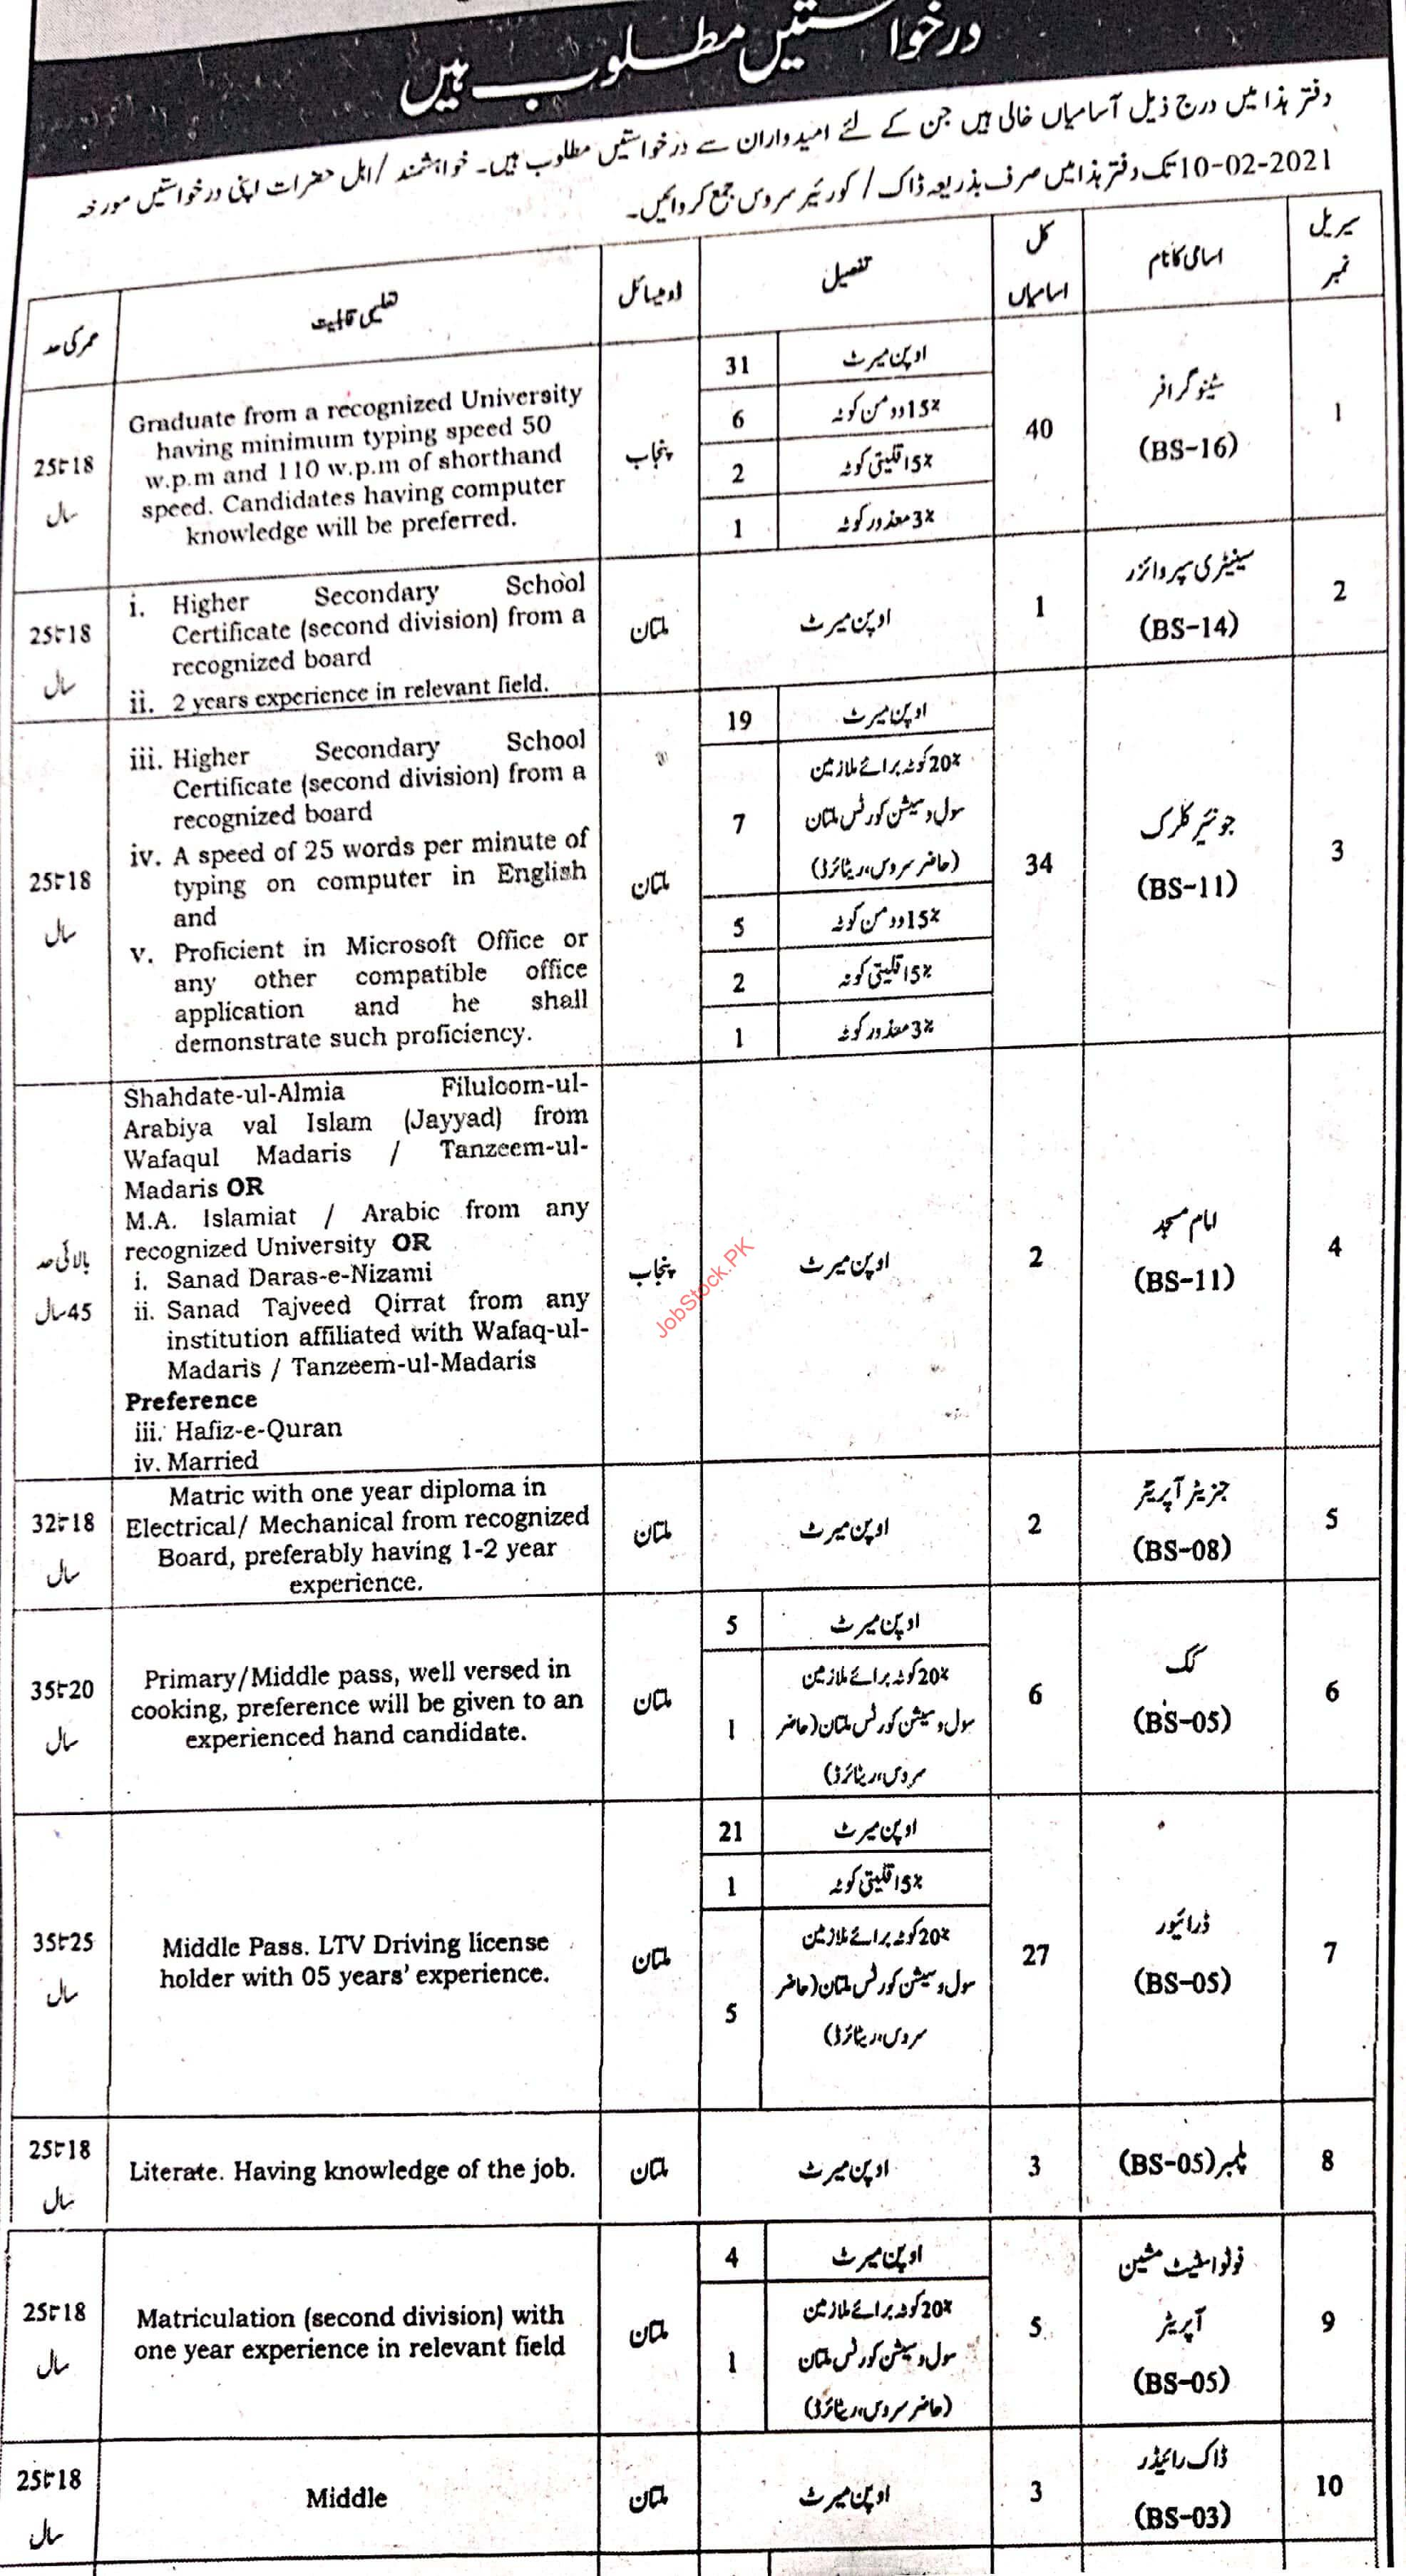 Session Court Multan Jobs Page 1